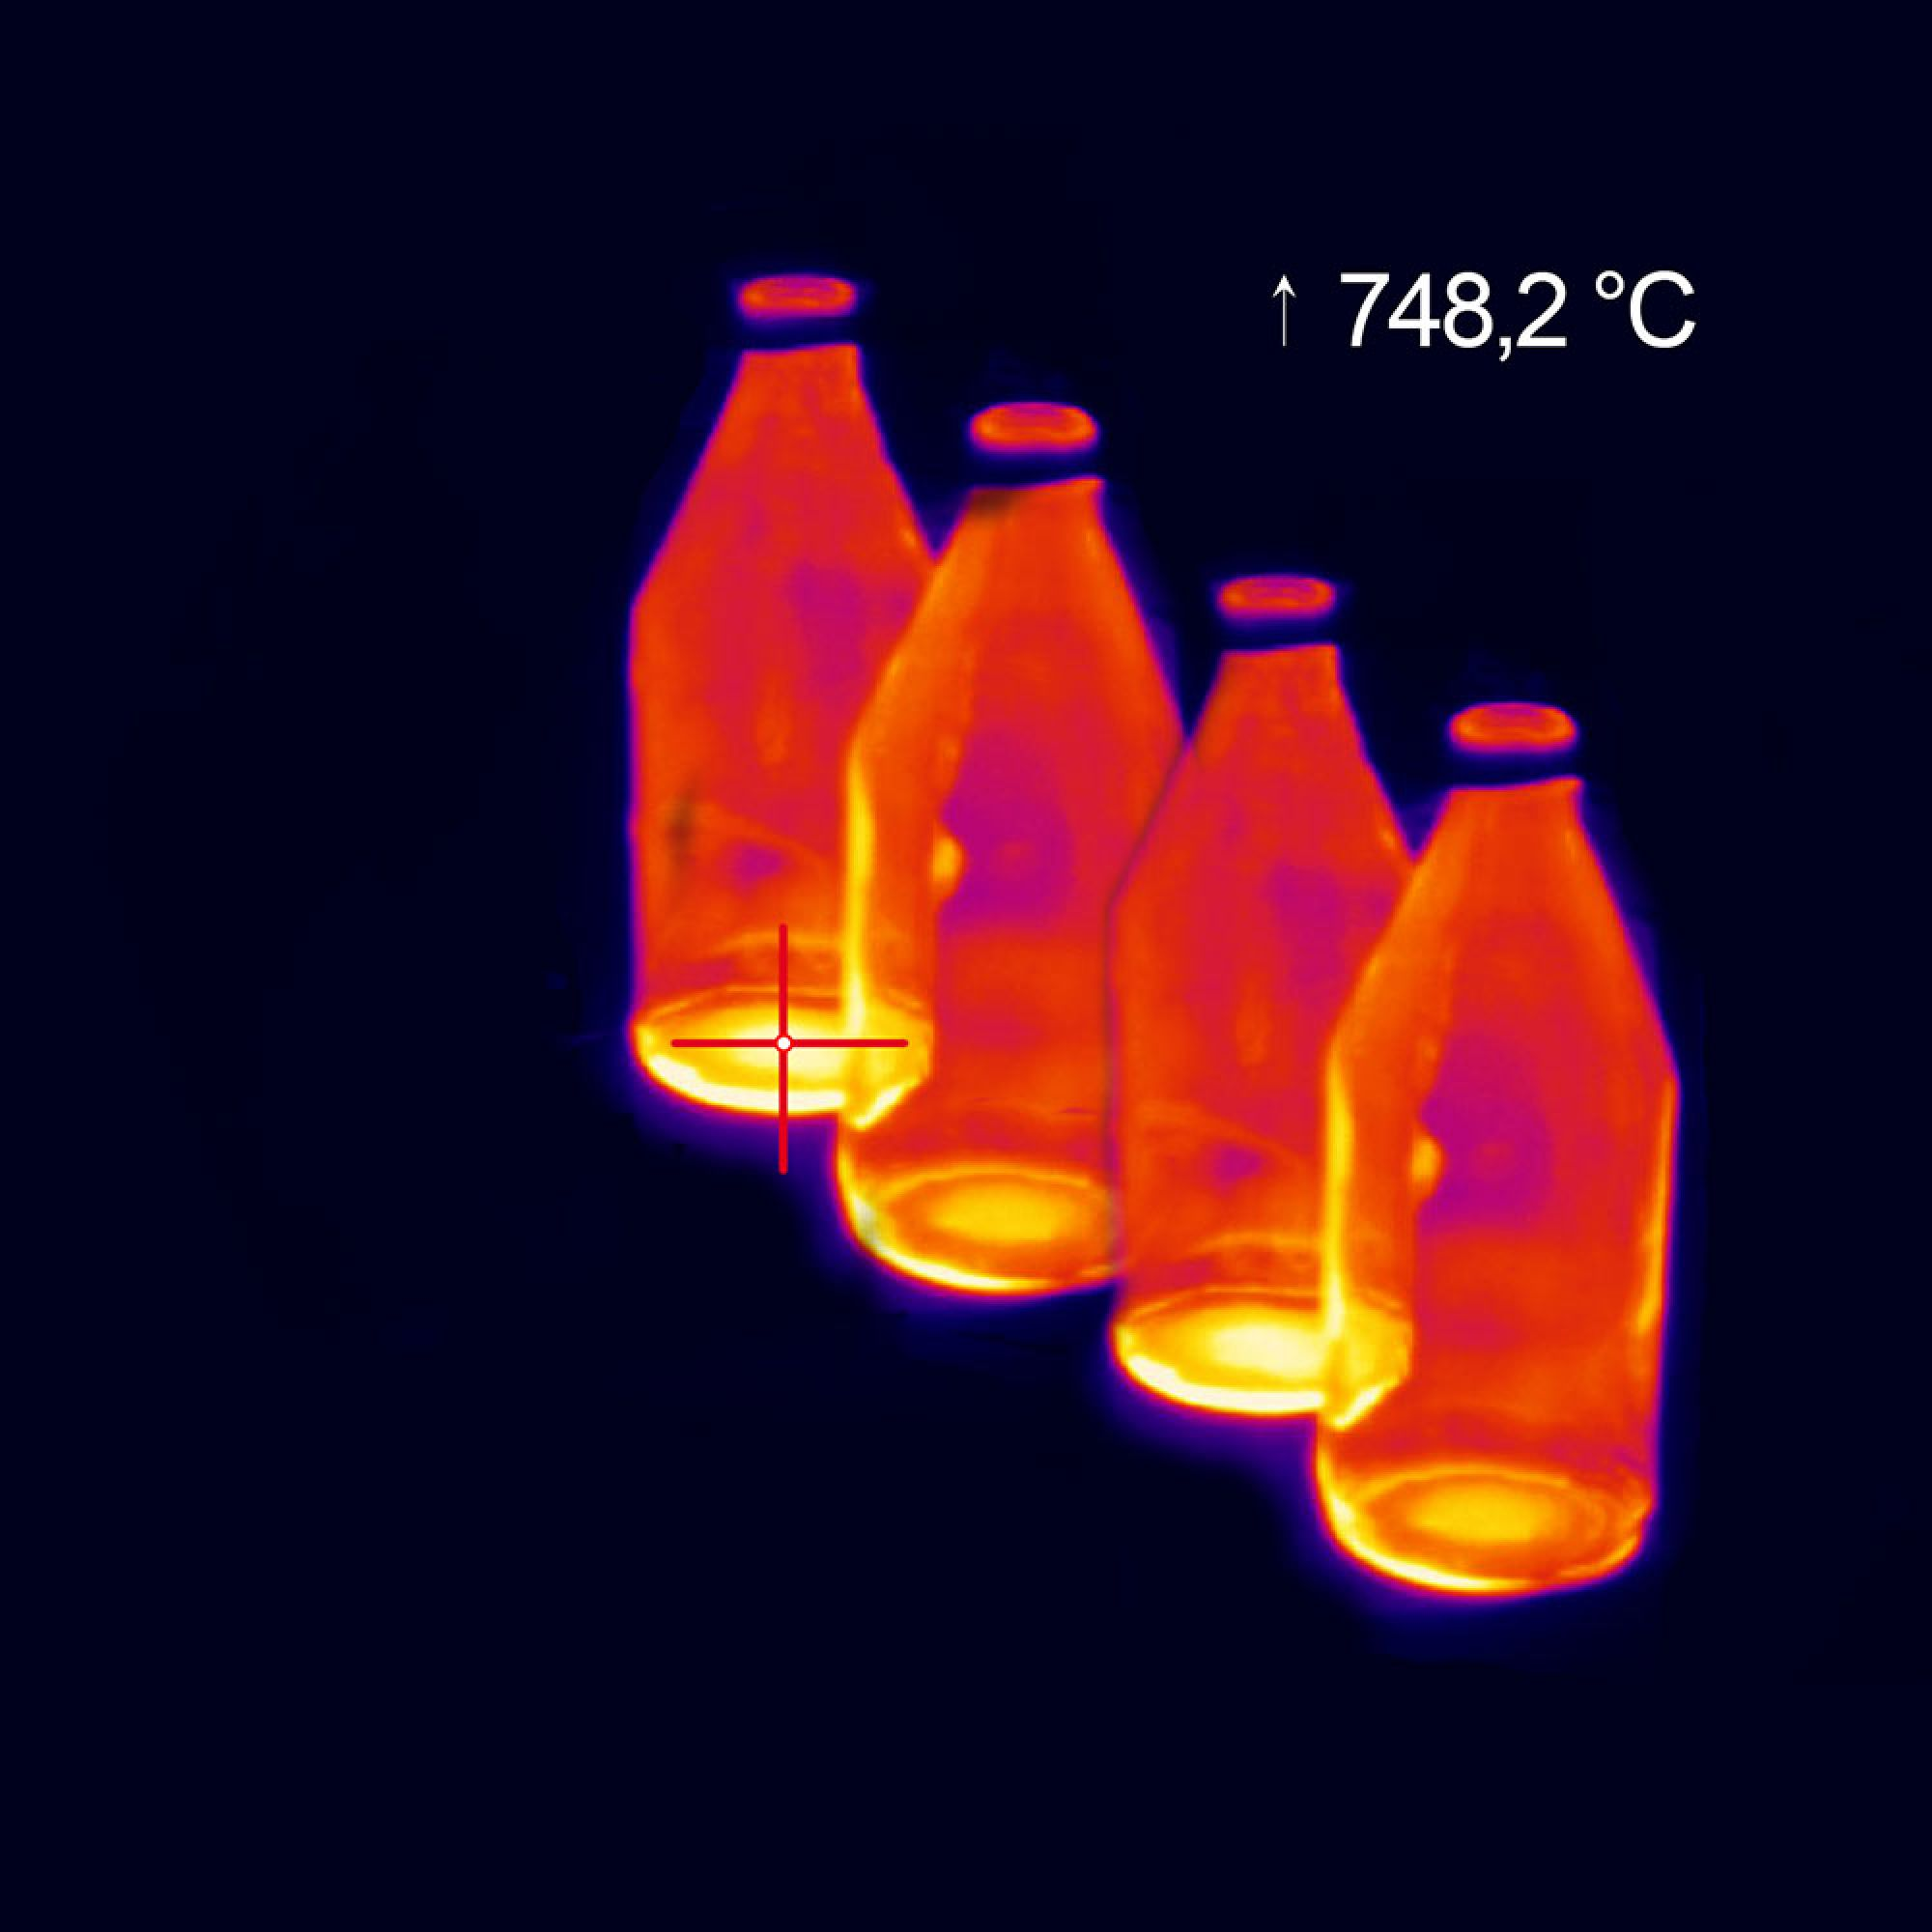 ir-camera-optris-pi450-640-g7-glass-bottles.jpg